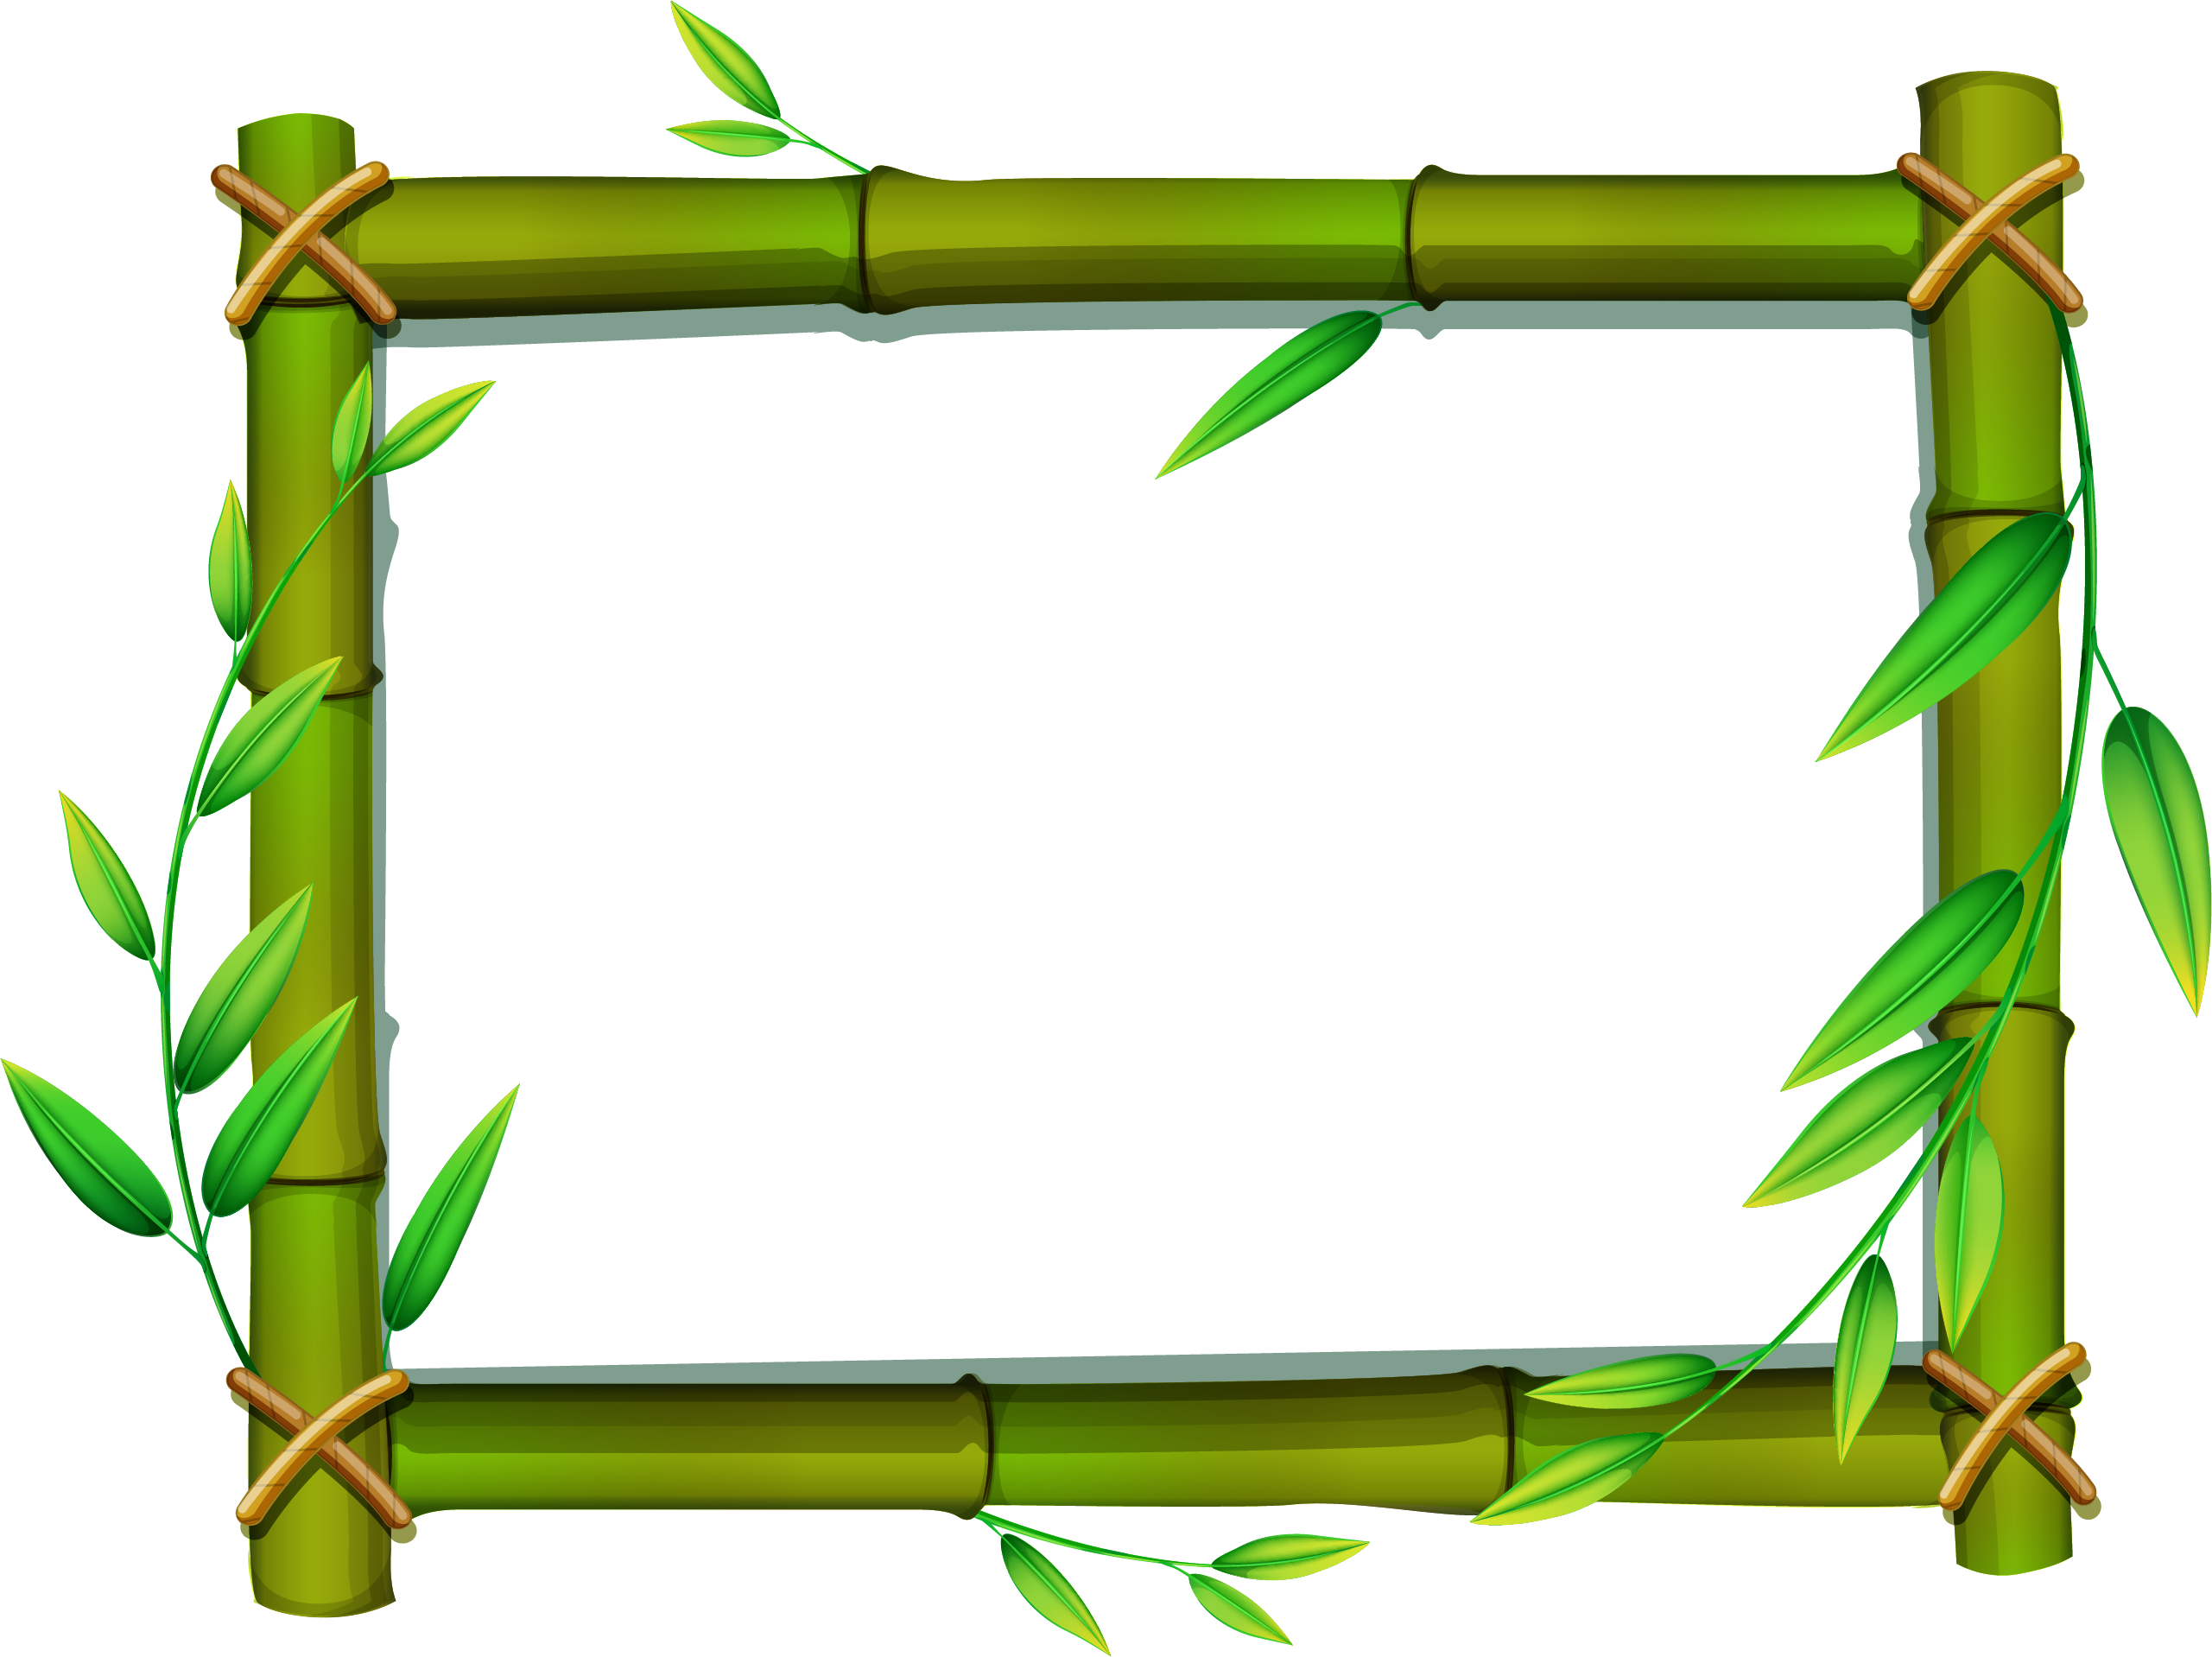 png royalty free download Png free images only. Bamboo transparent frame borders